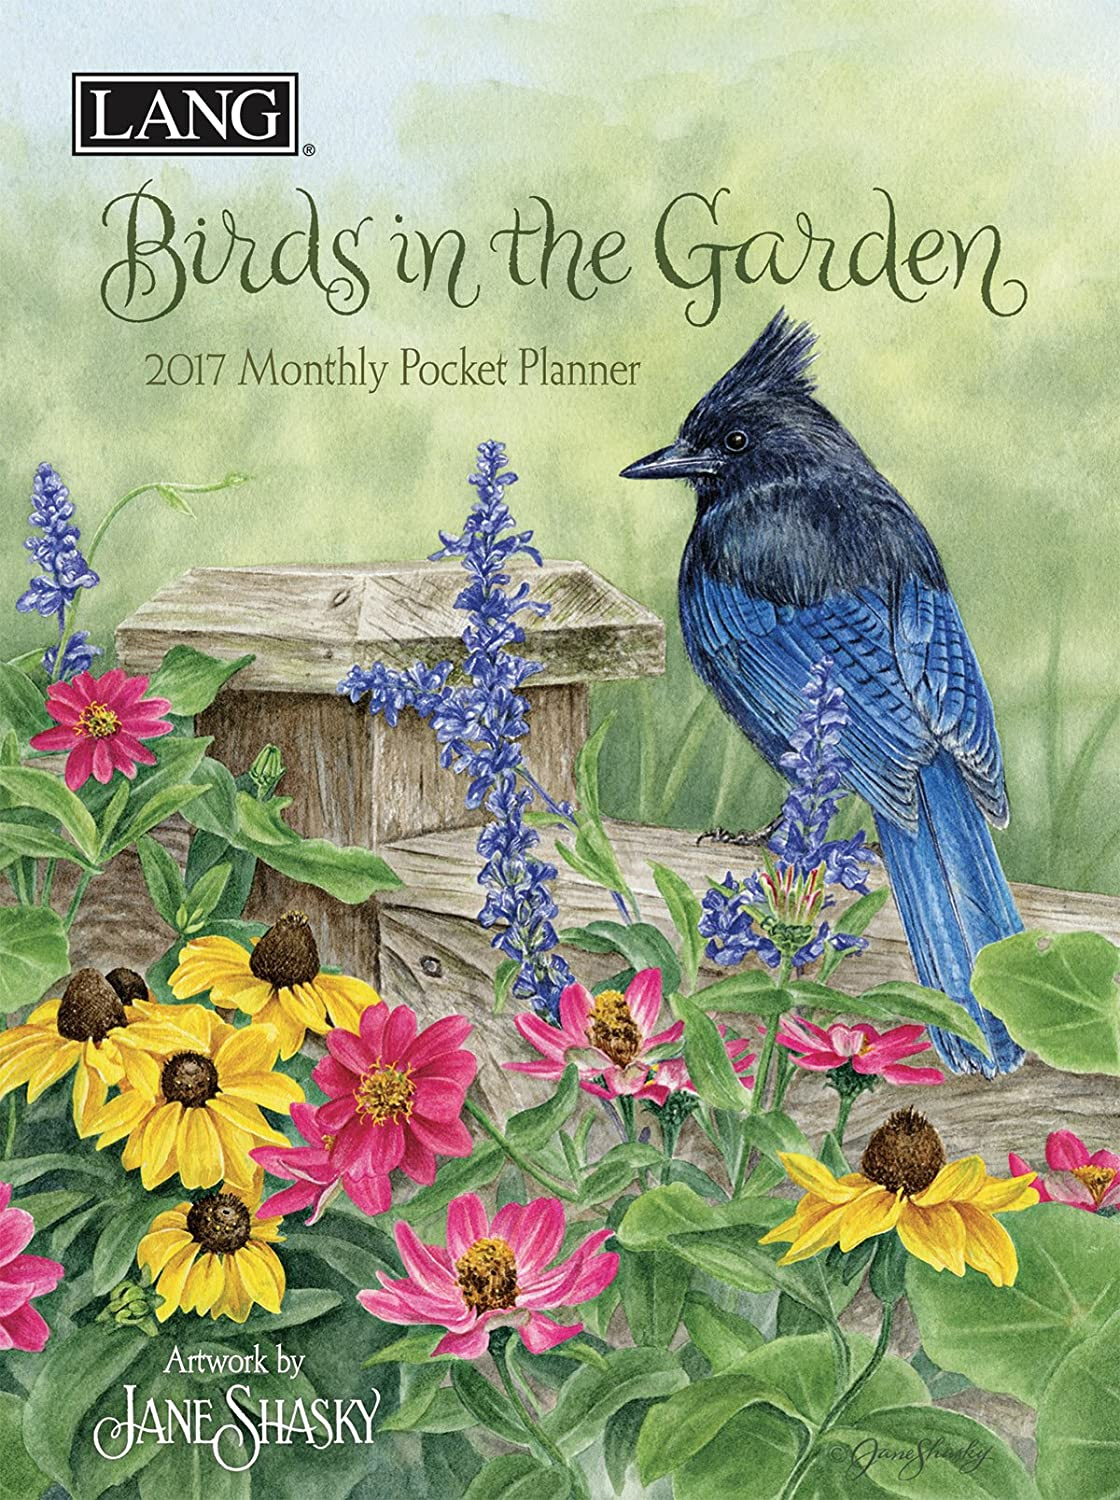 Lang 2017 Birds In The Garden Monthly Pocket Planner, 4.5 x 6.5 inches (17991003182)